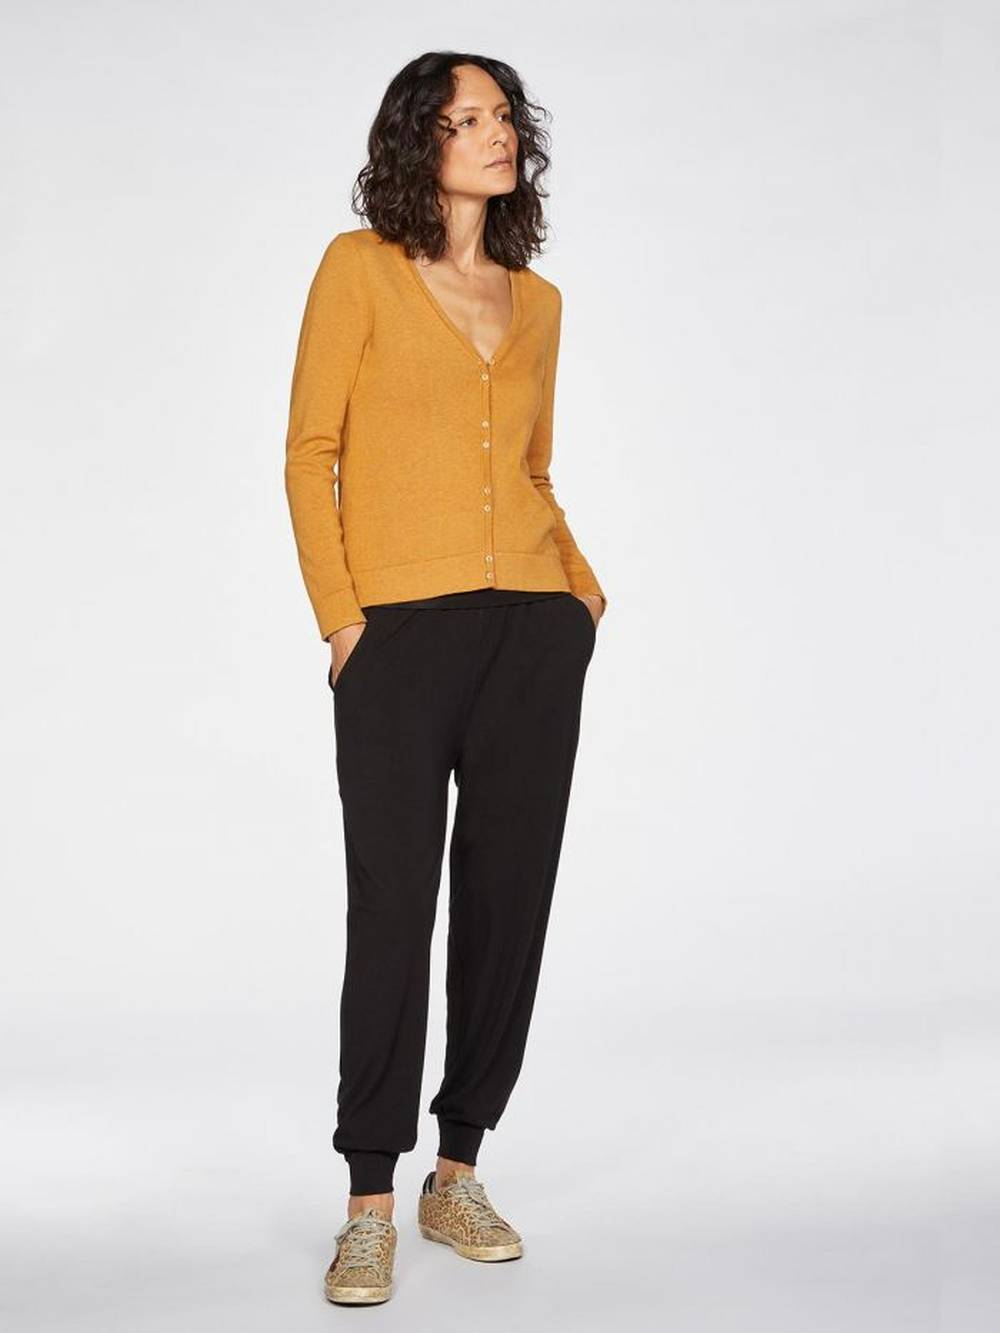 thought cardigan investment clothing pieces